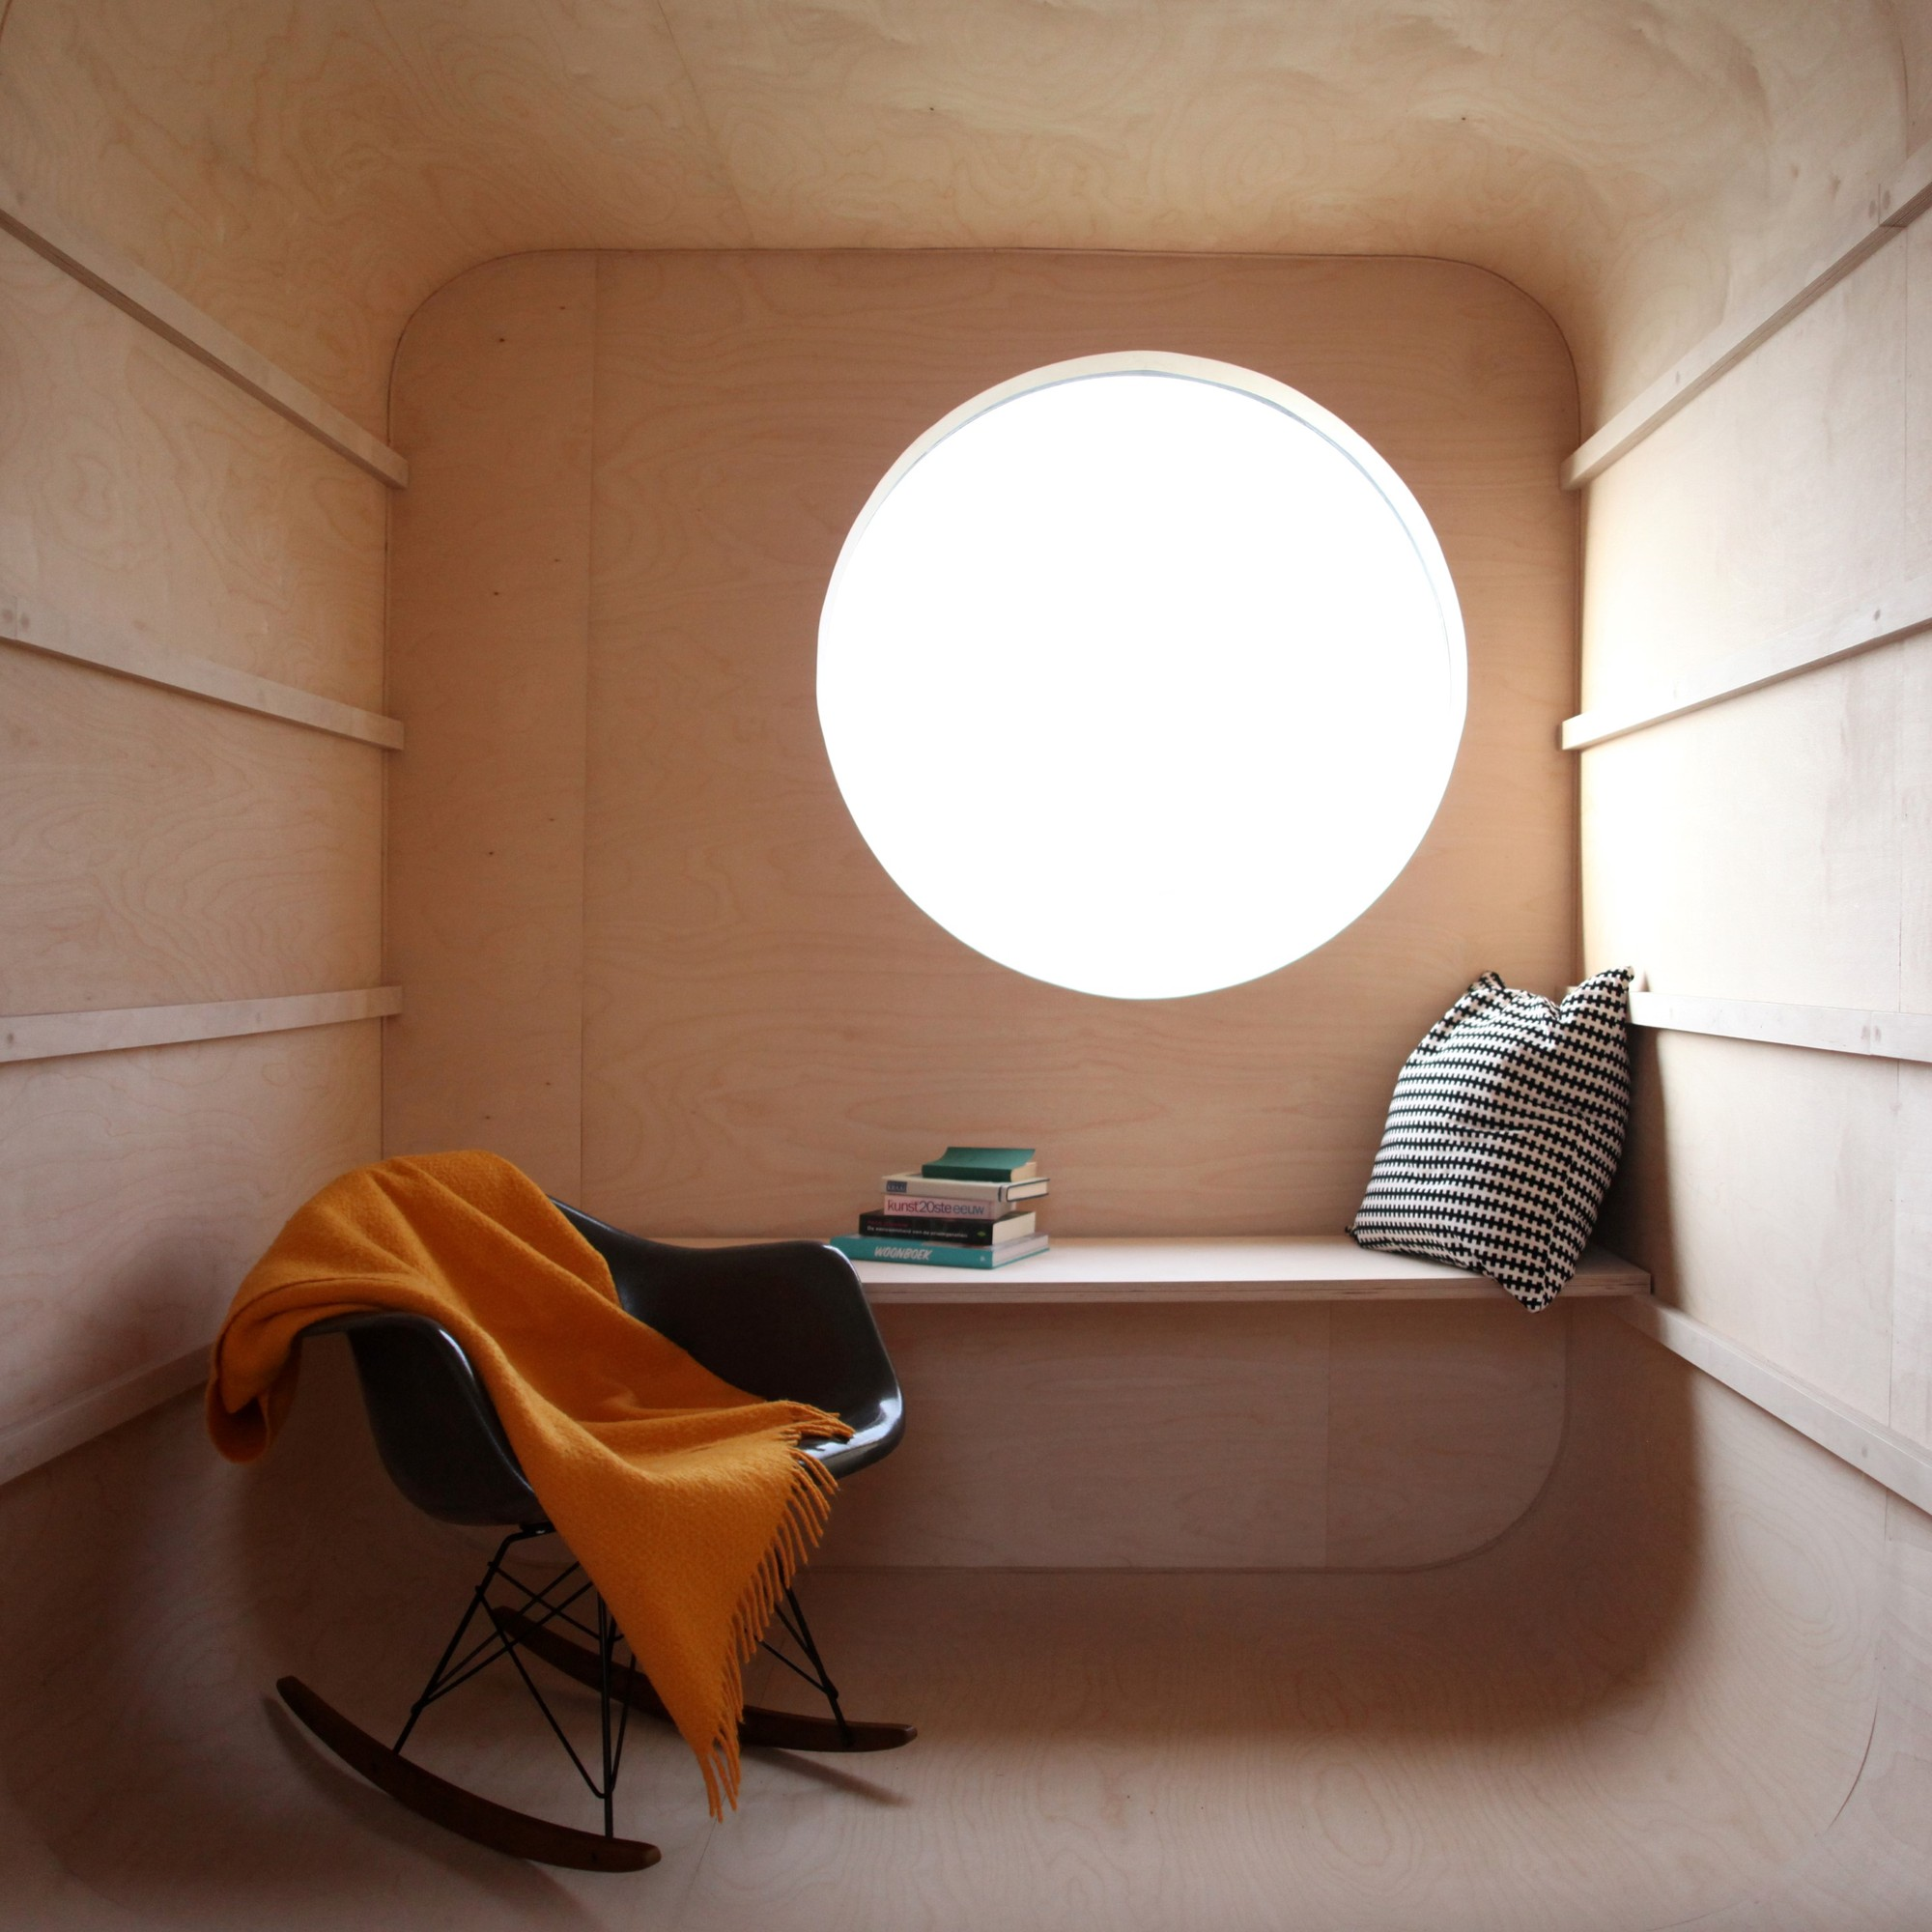 Construction Trailer Transformed Into Small Dwelling / Karel Verstraeten, Courtesy of Karel Verstraeten